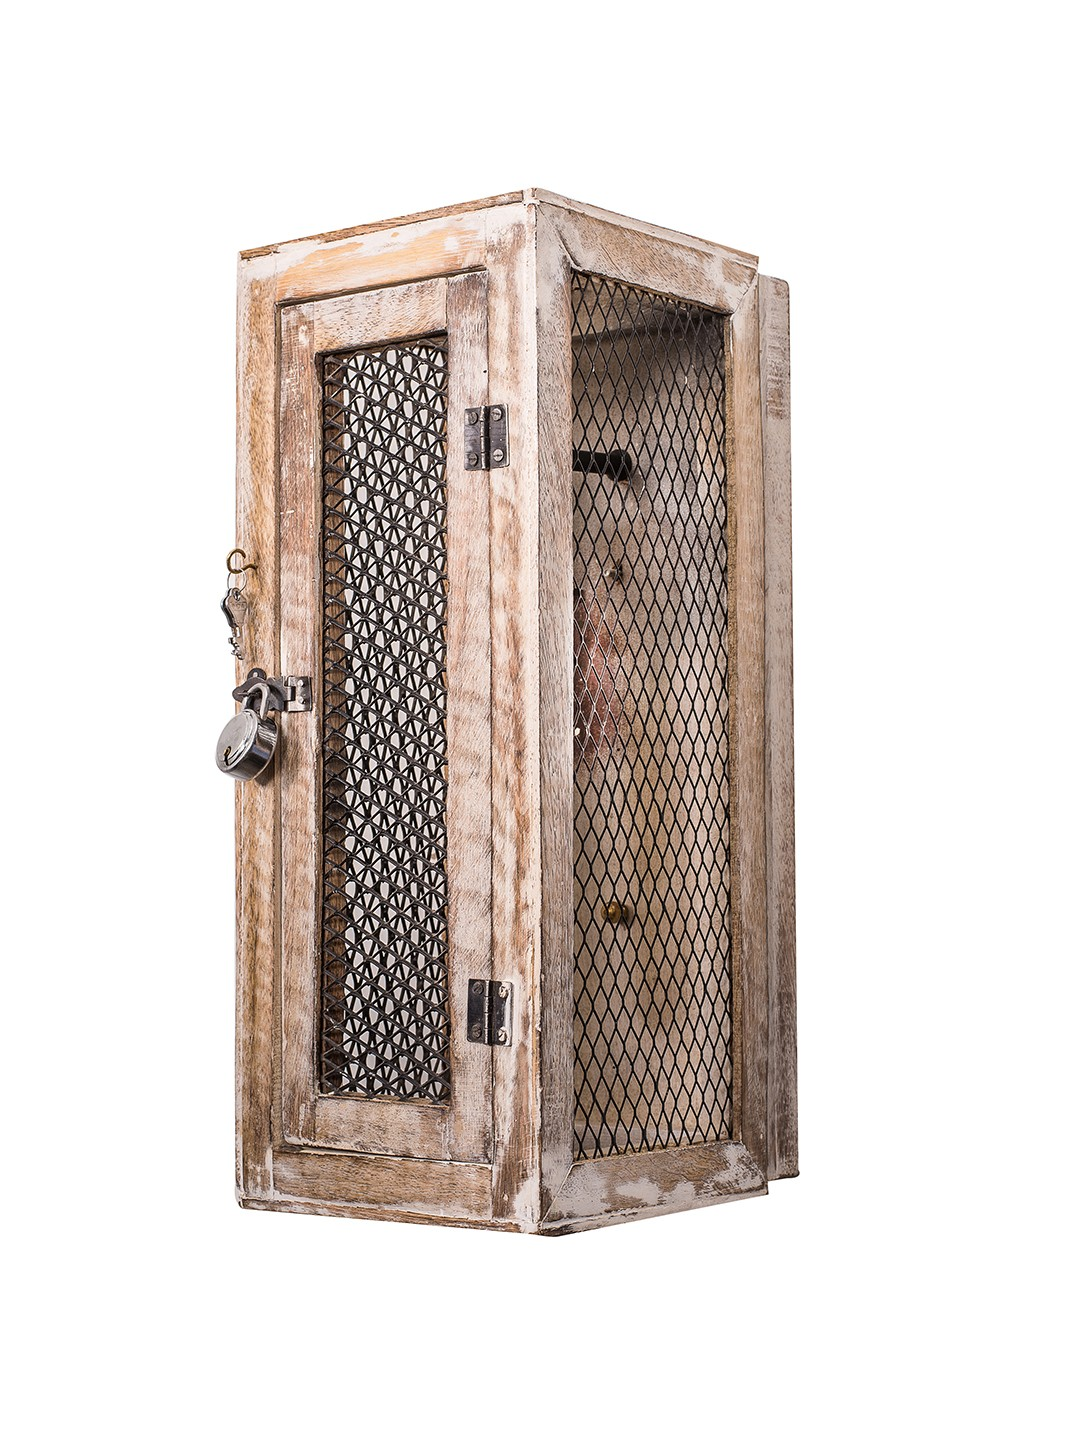 Rustic Wood Lantern Lattice Wall Light